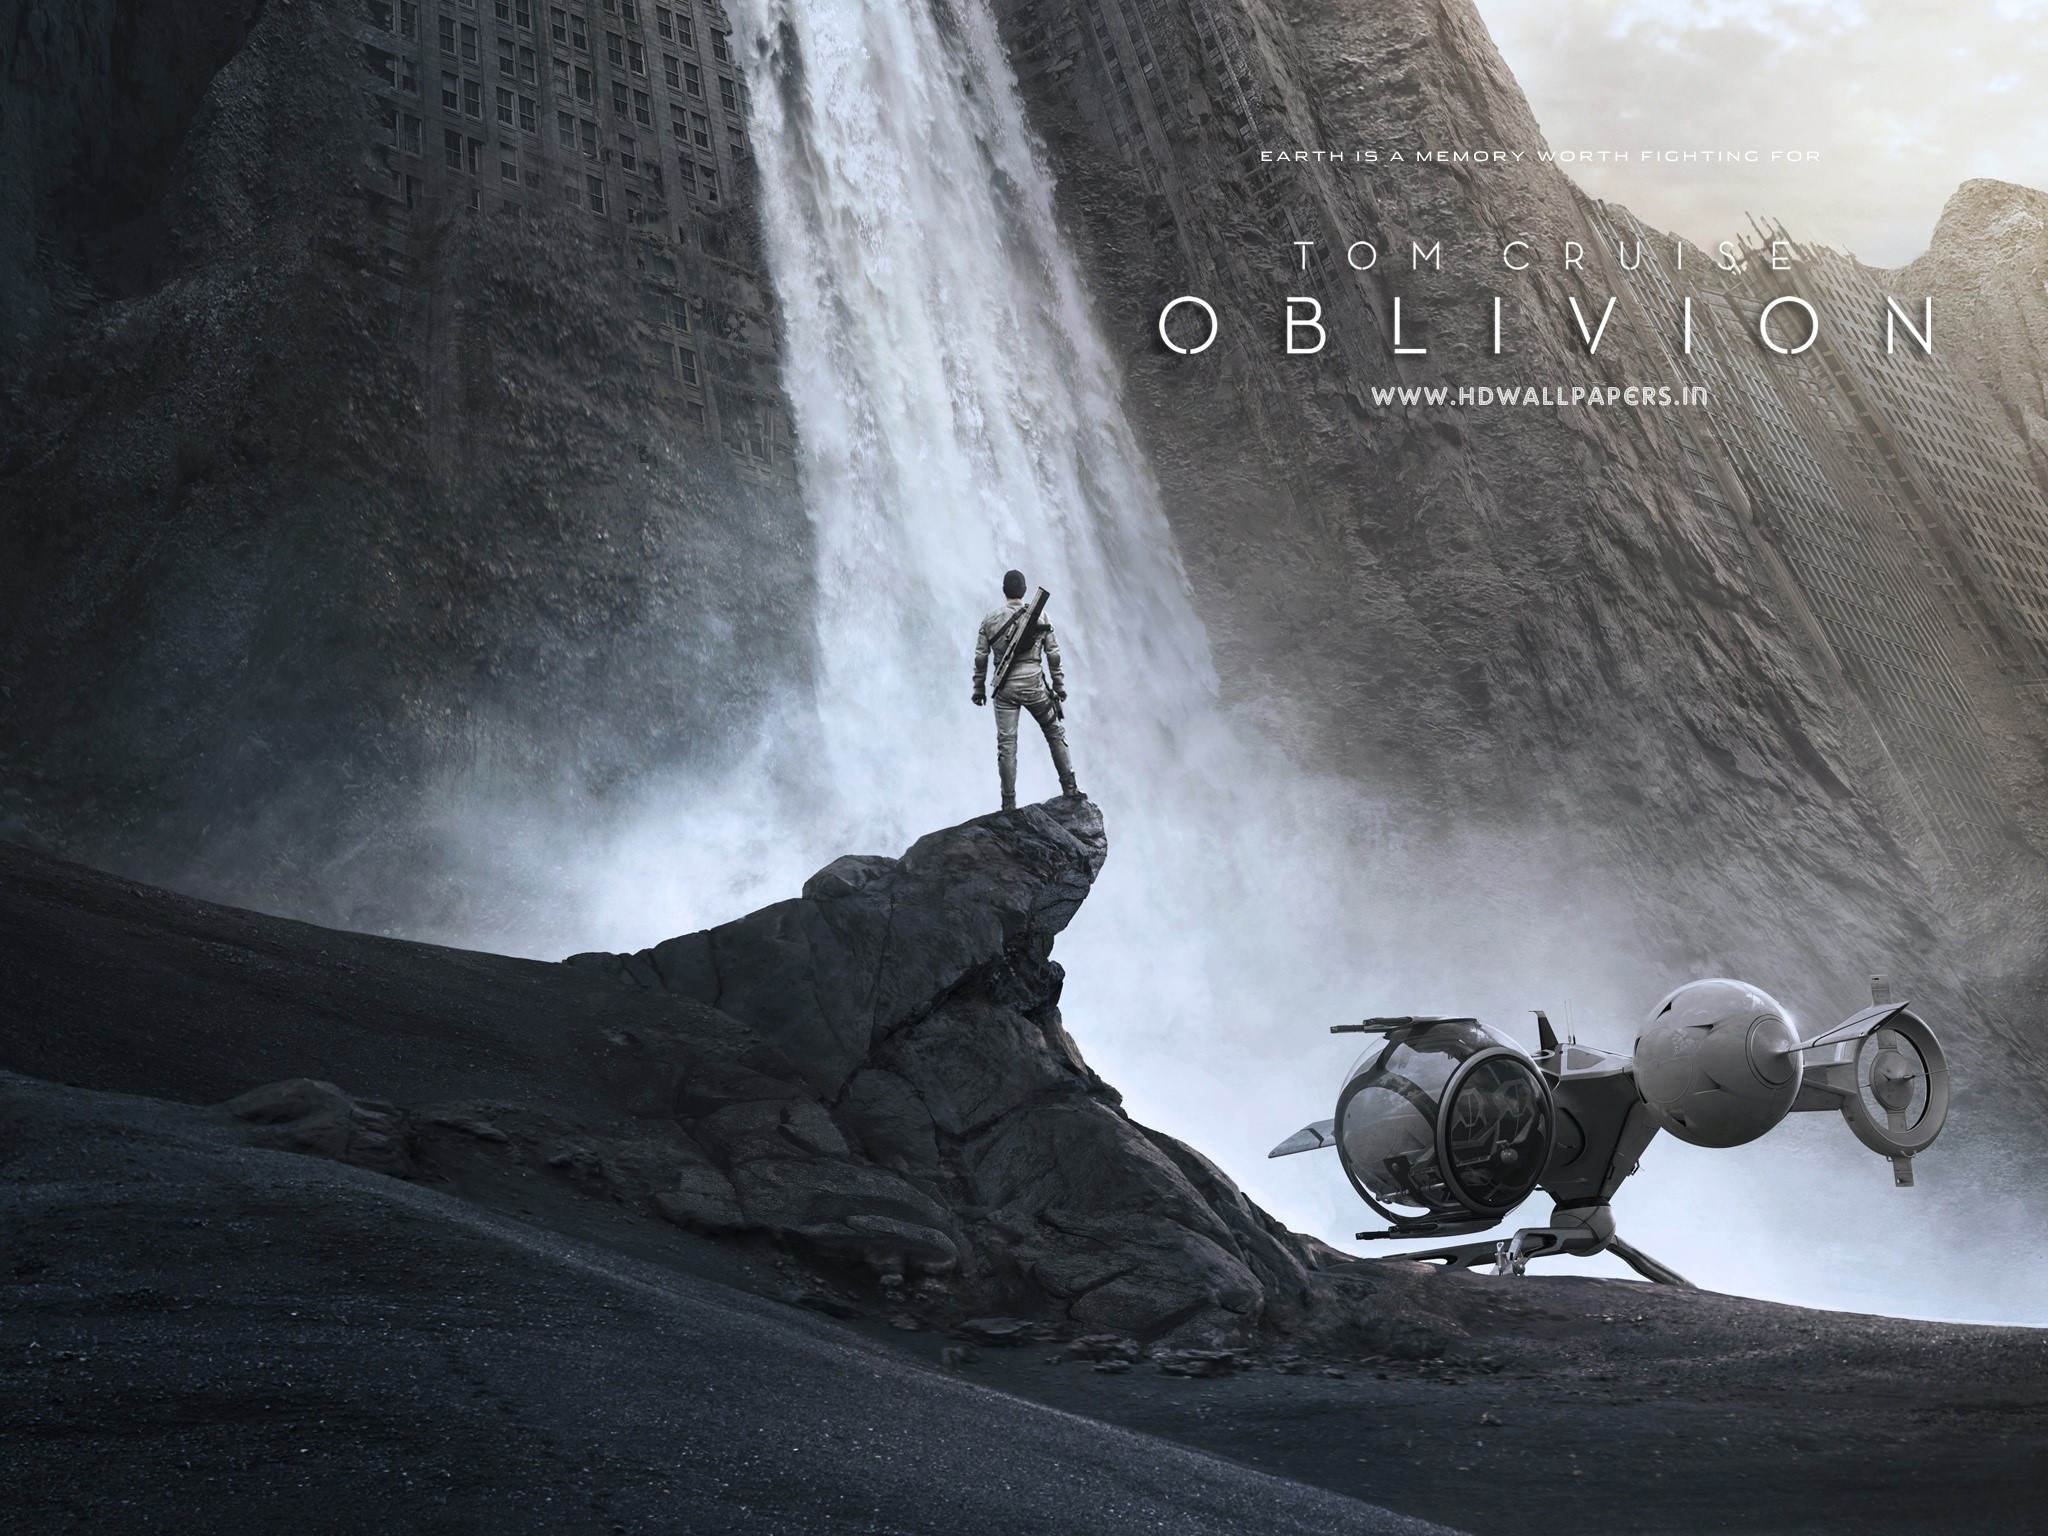 Wallpaper Tom Cruise in the movie Oblivion